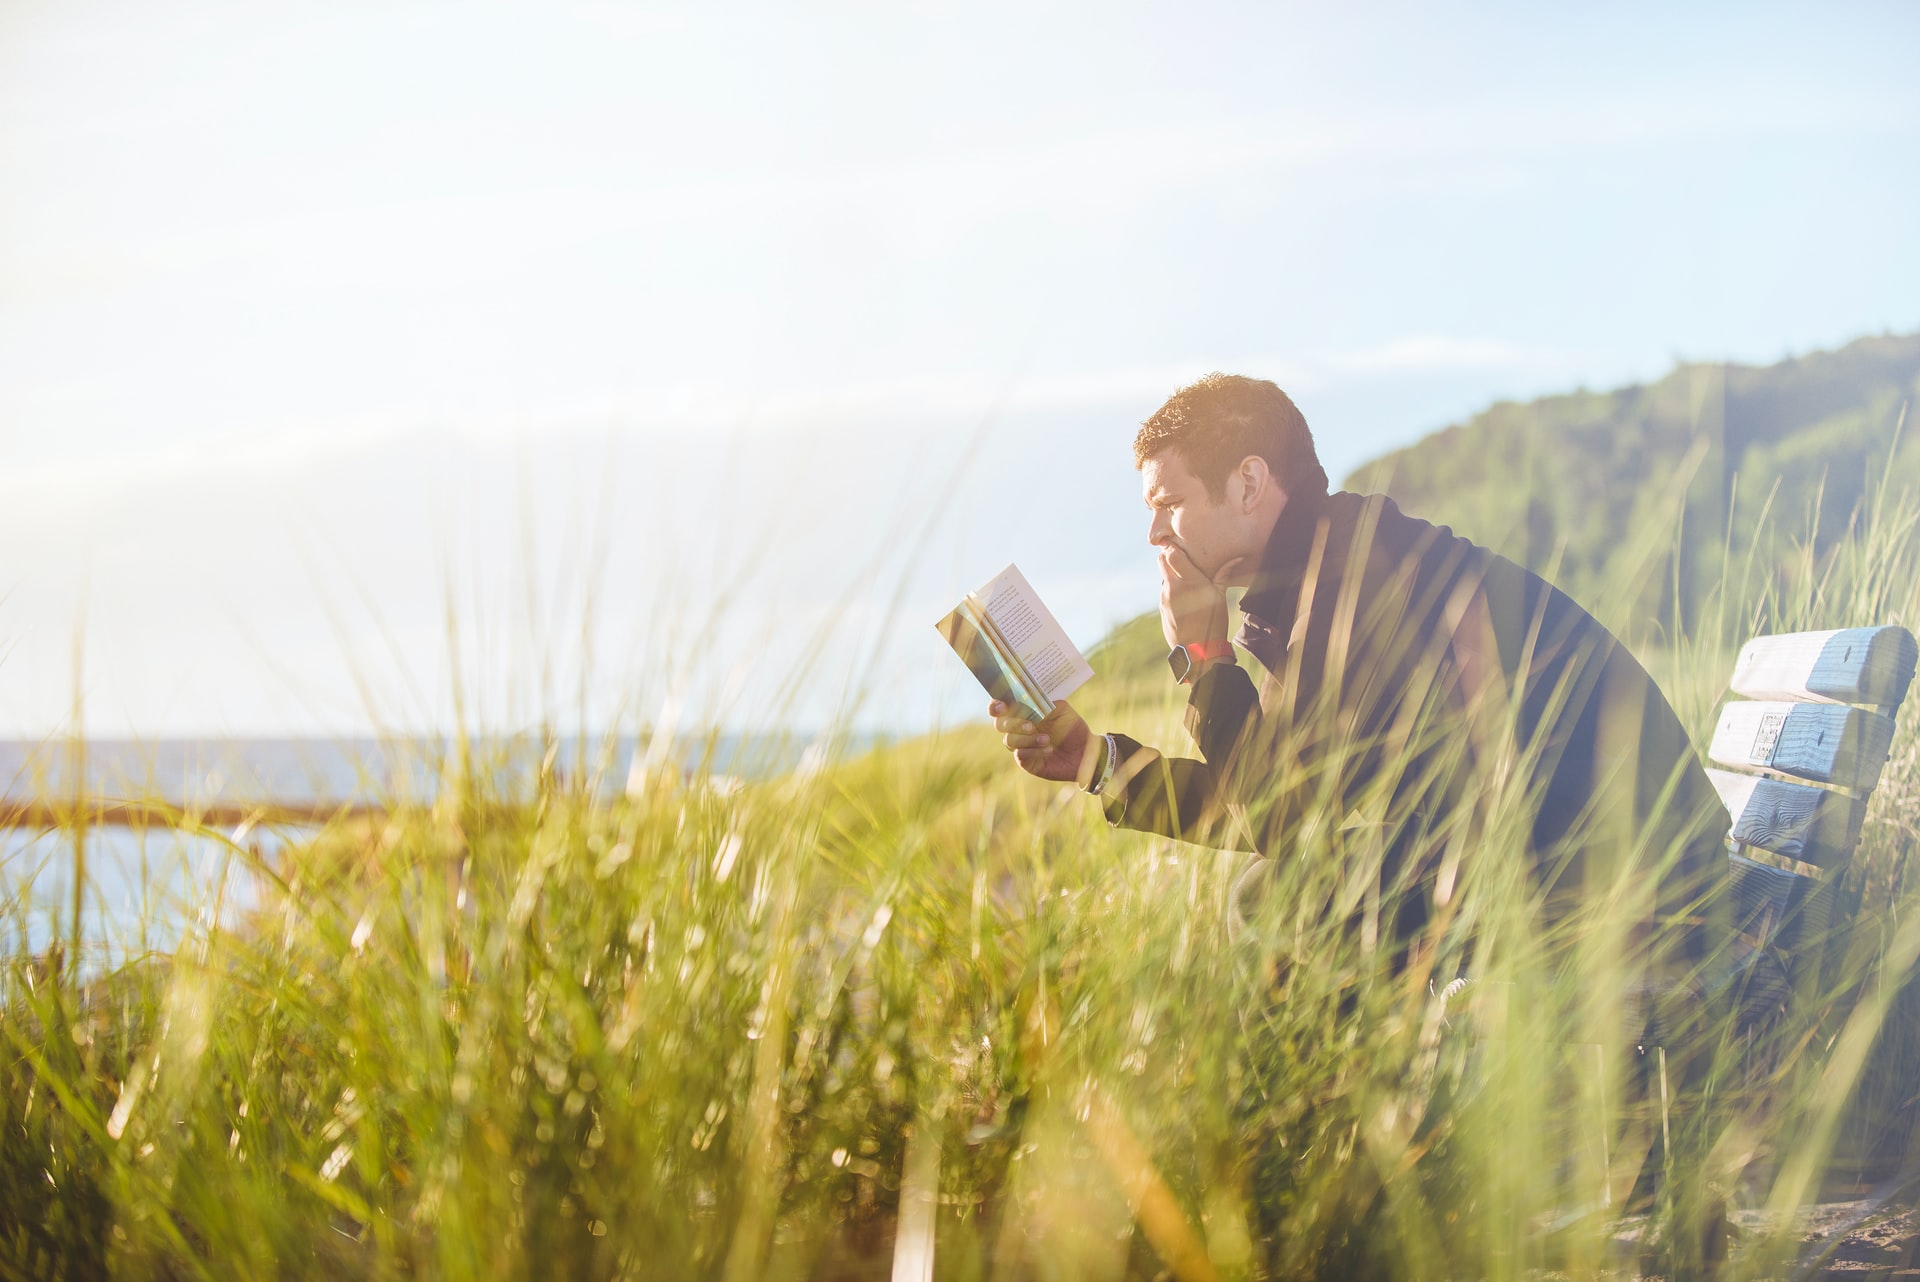 What did Jesus say? Reach the unreached